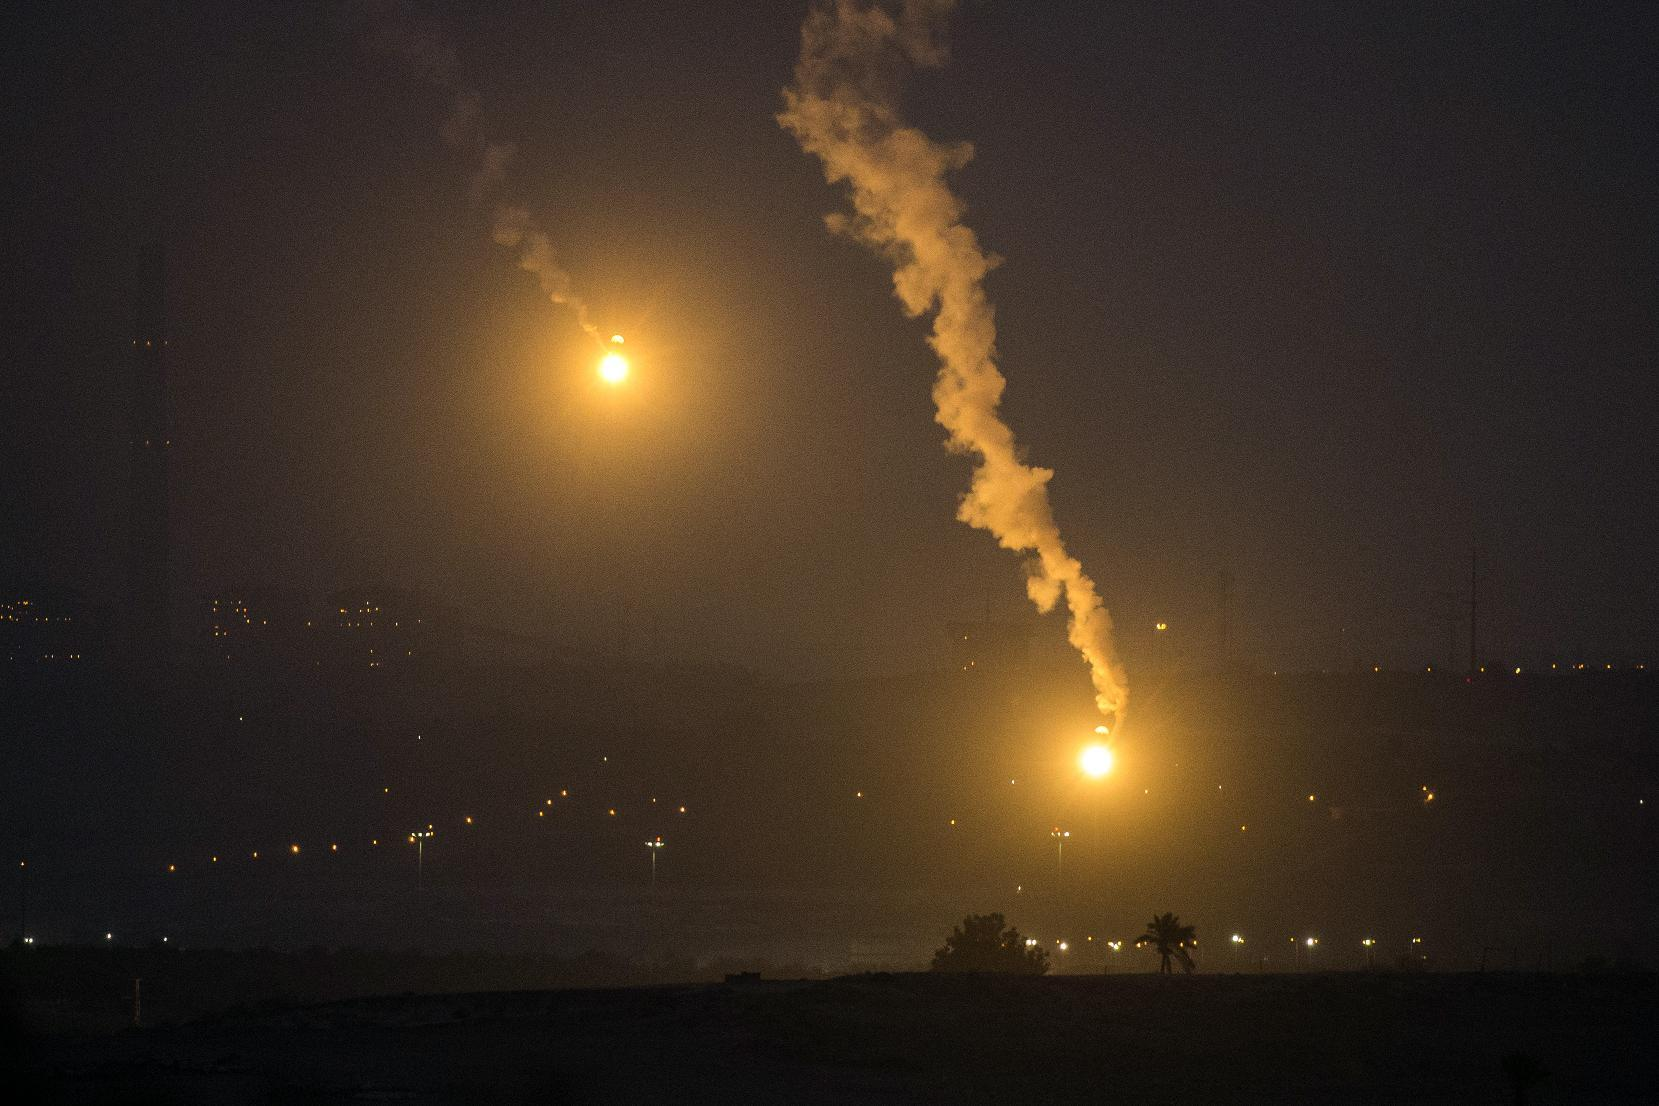 A picture taken from the Israeli Gaza border shows an Israeli army flare illuminating the sky above the Gaza strip on July 17, 2014 (AFP Photo/Jack Guez)